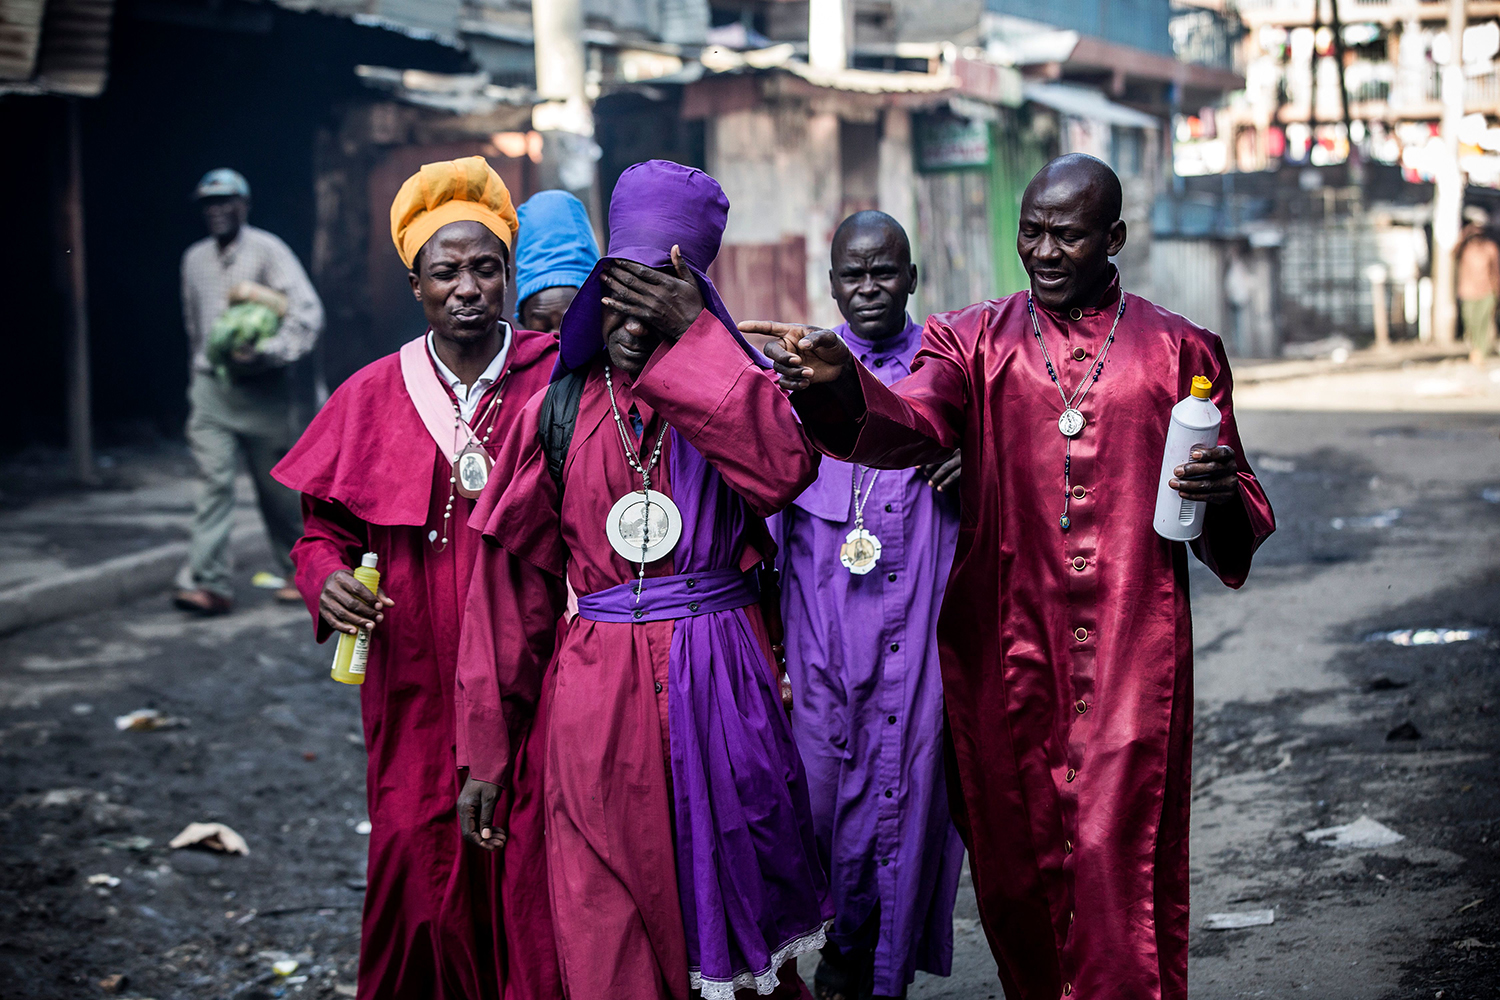 TOPSHOT - Members of the African church Legio Maria react while being affected by incoming tear gas canisters, during clashes between Kenyan Police and opposition supporters in Mathare, Nairobi on October 26, 2017.  At least three people were shot dead October 26 and more than 30 wounded as opposition protesters clashed with police during Kenya's presidential re-run, police and hospital sources said. / AFP PHOTO / Luis Tato        (Photo credit should read LUIS TATO/AFP/Getty Images)